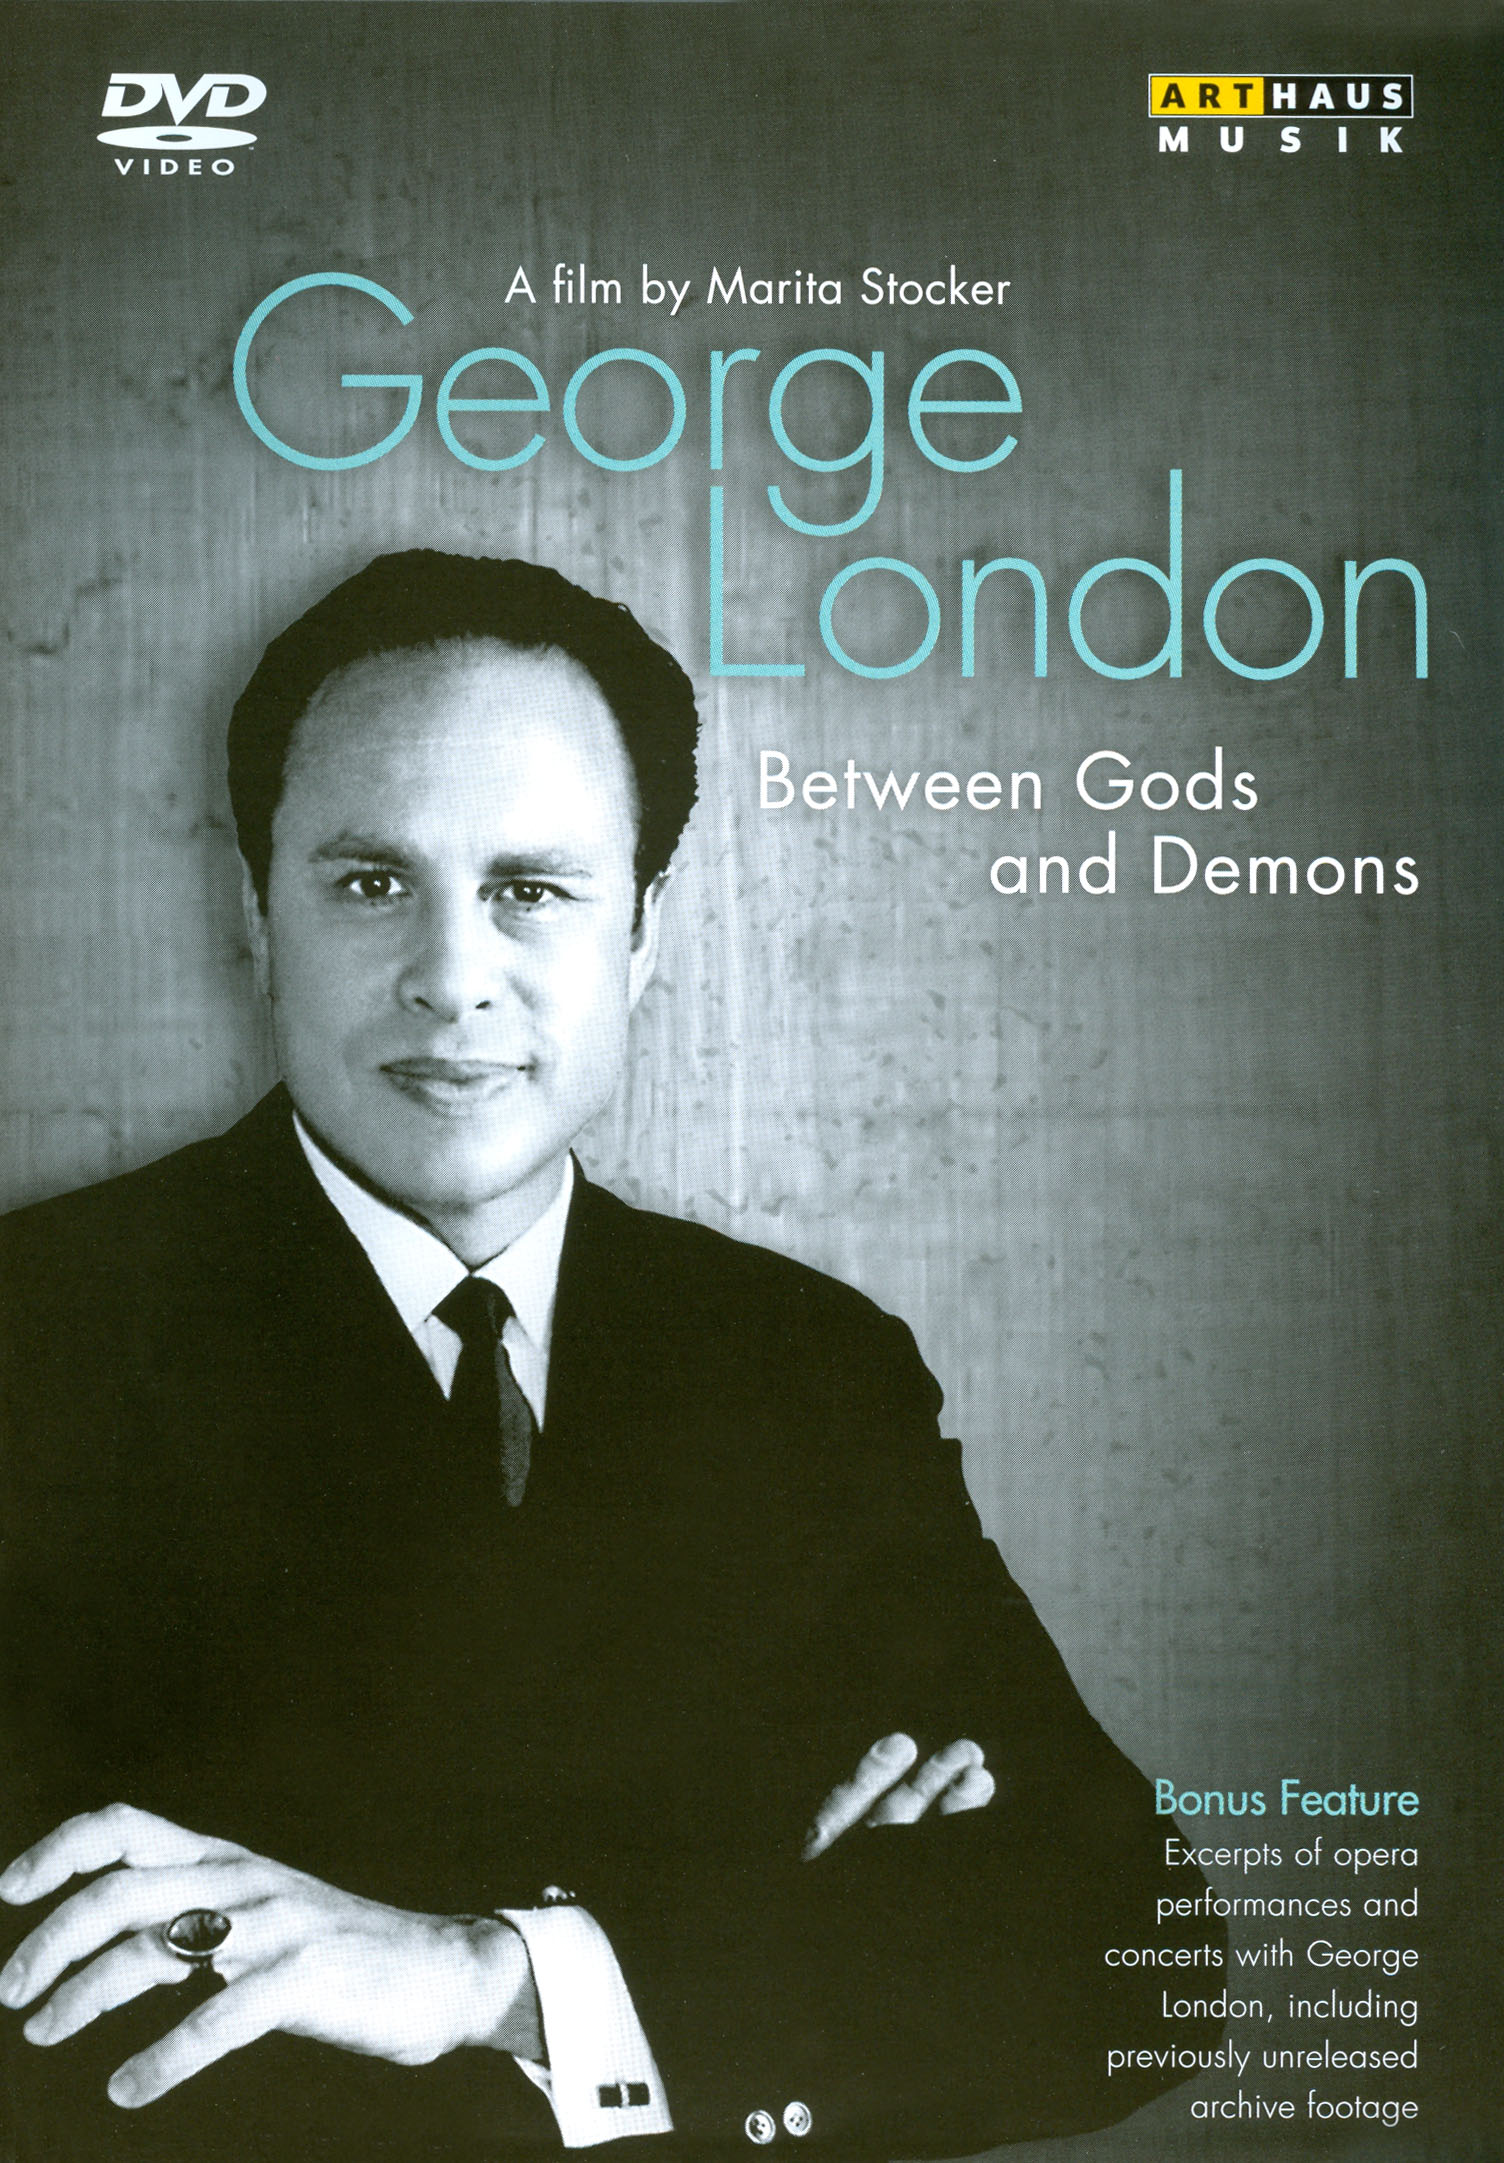 George London: Between Gods and Demons